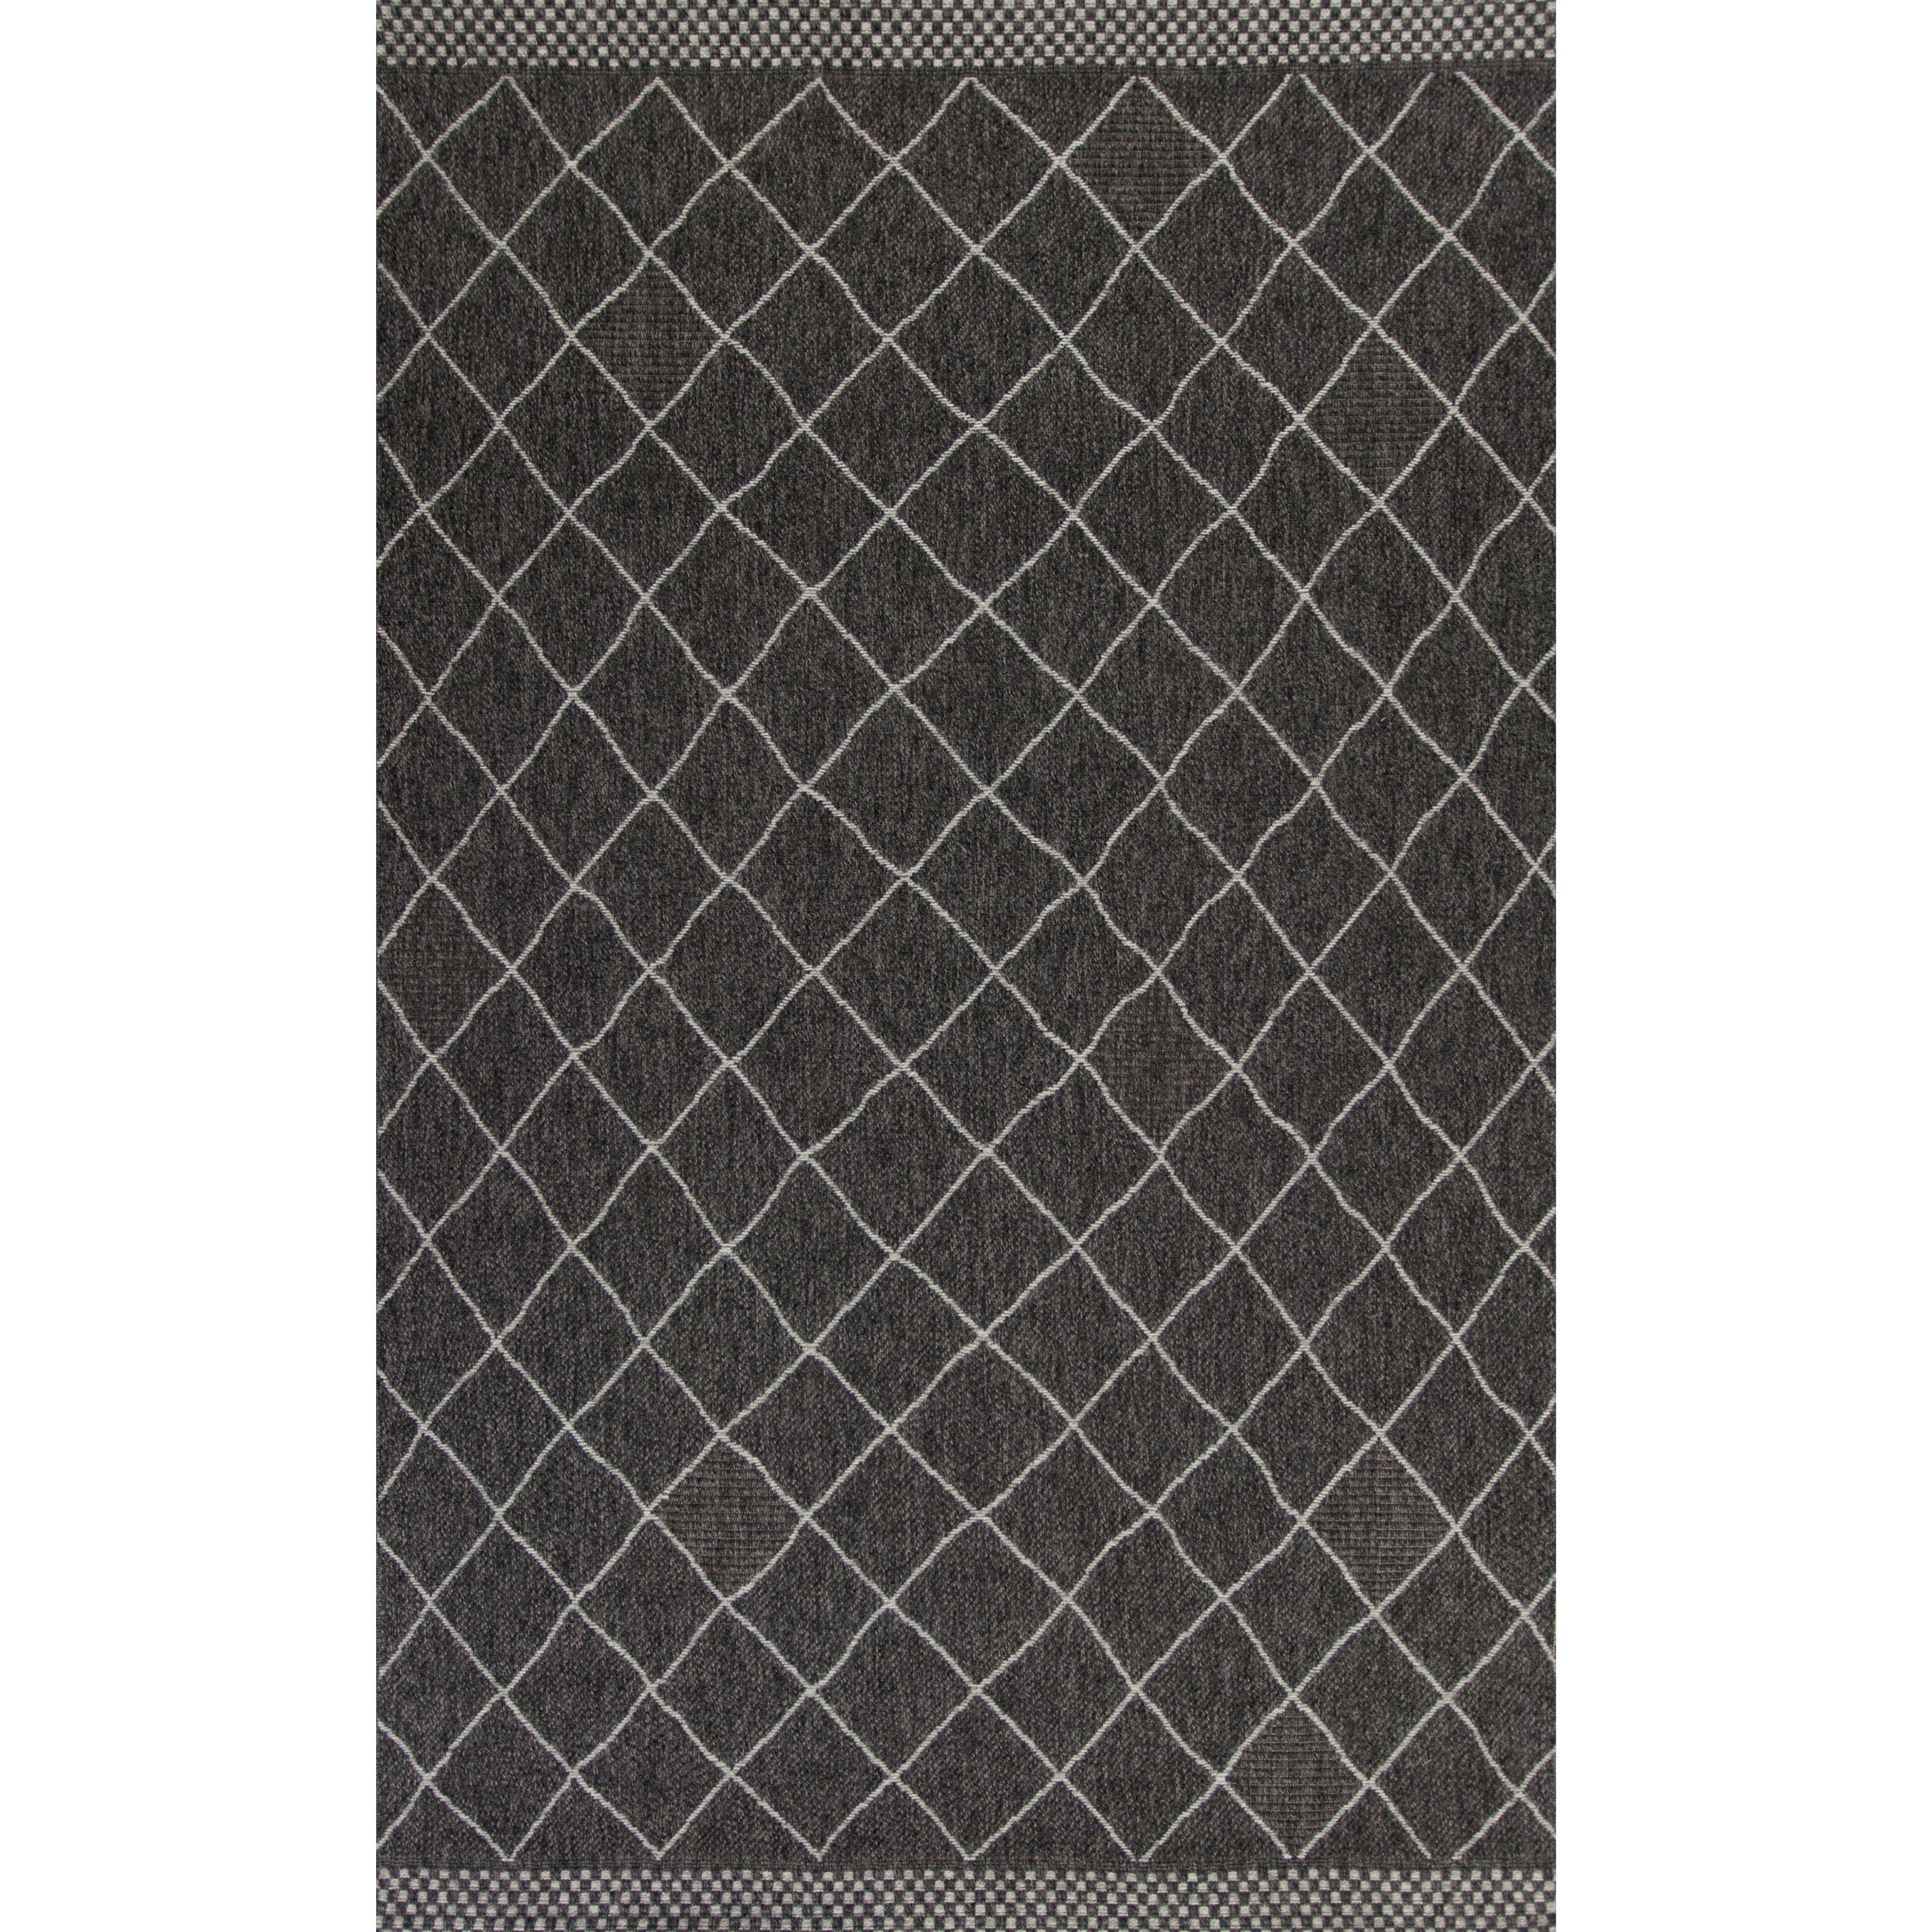 """Farmhouse 7'7"""" X 5' Area Rug by Kas at Wilson's Furniture"""